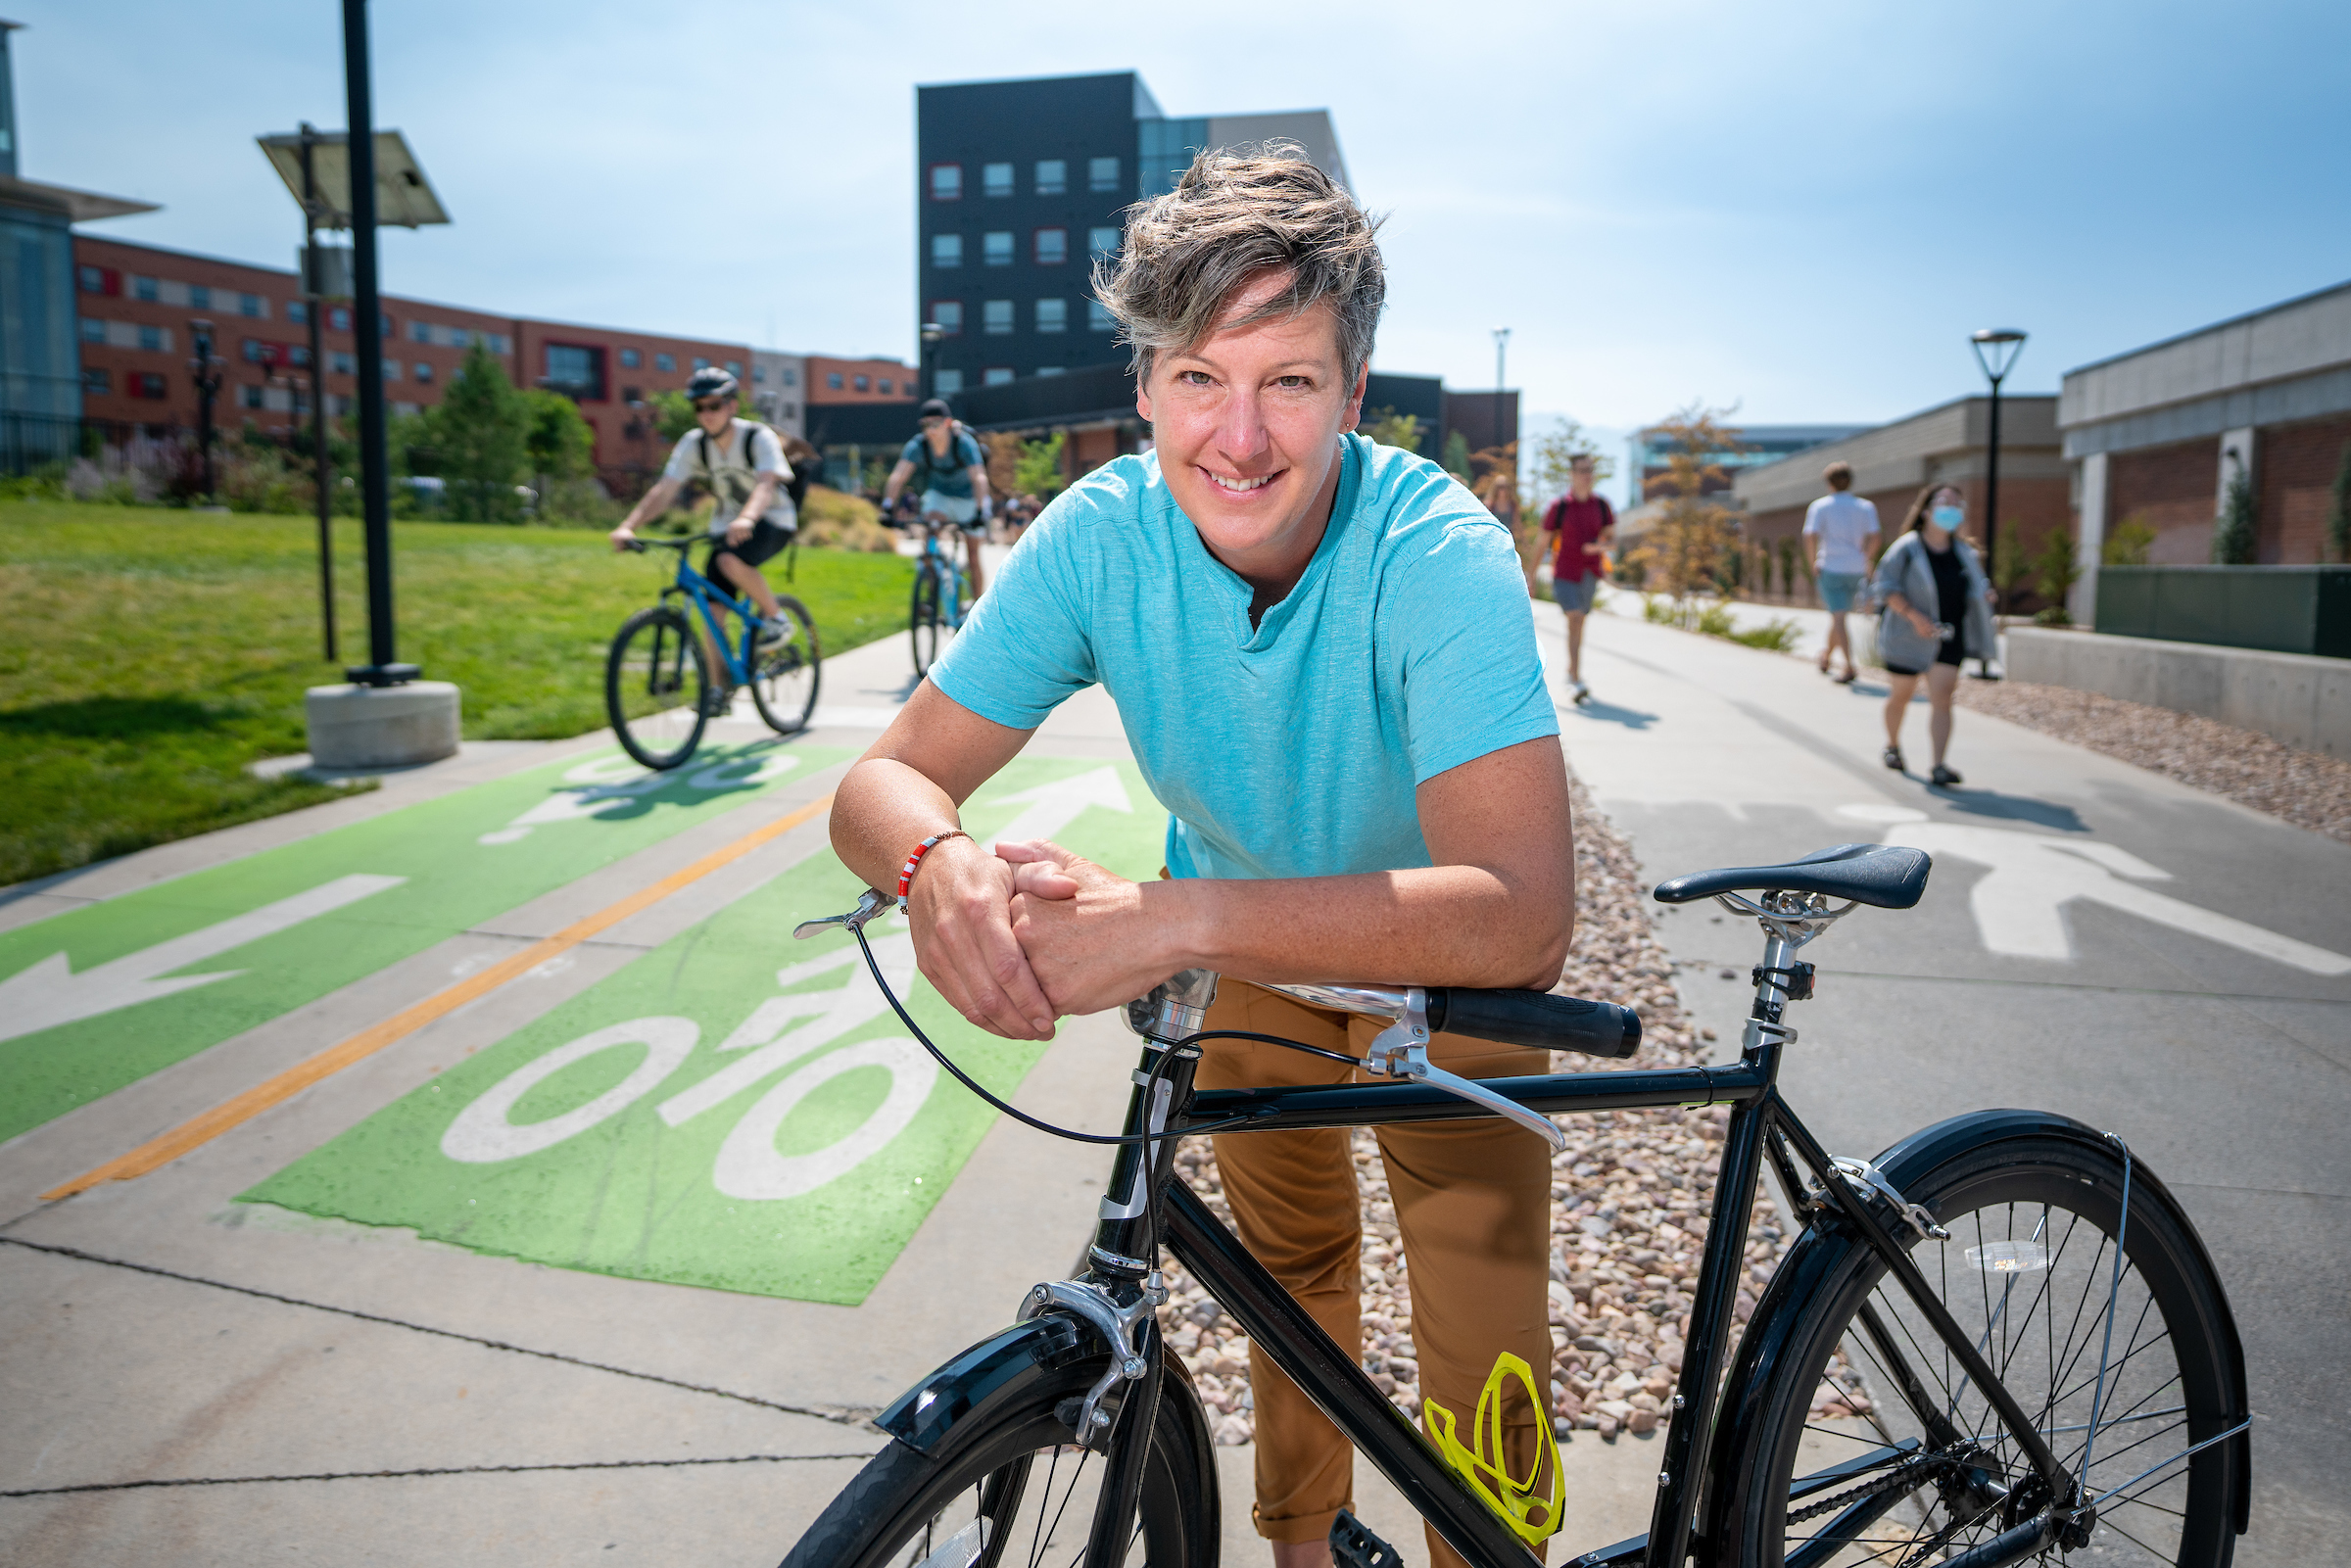 Ginger Cannon, the active transportation manager for the University of Utah, poses with her bicycle along a campus bike and pedestrian path.